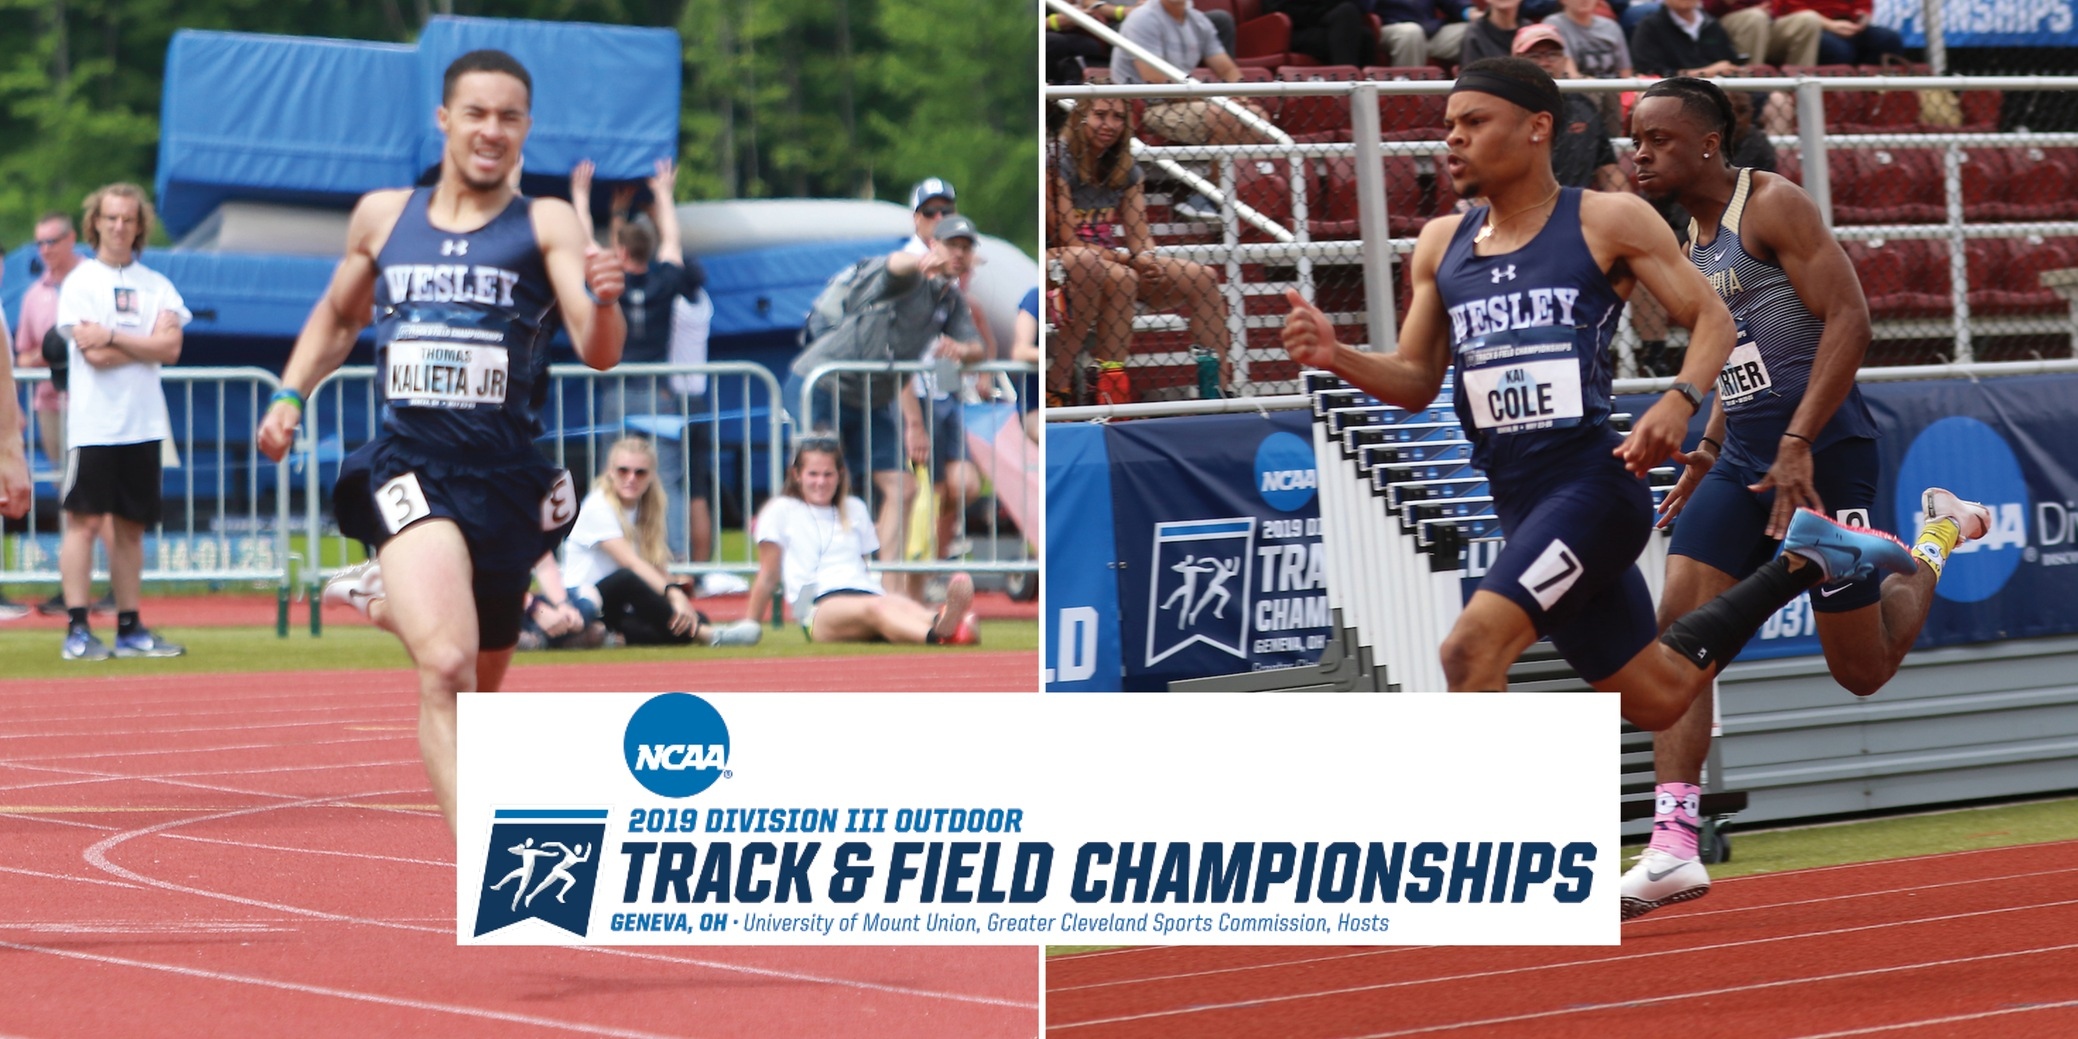 Cole, Kalieta advance to finals at NCAA Outdoor Championships